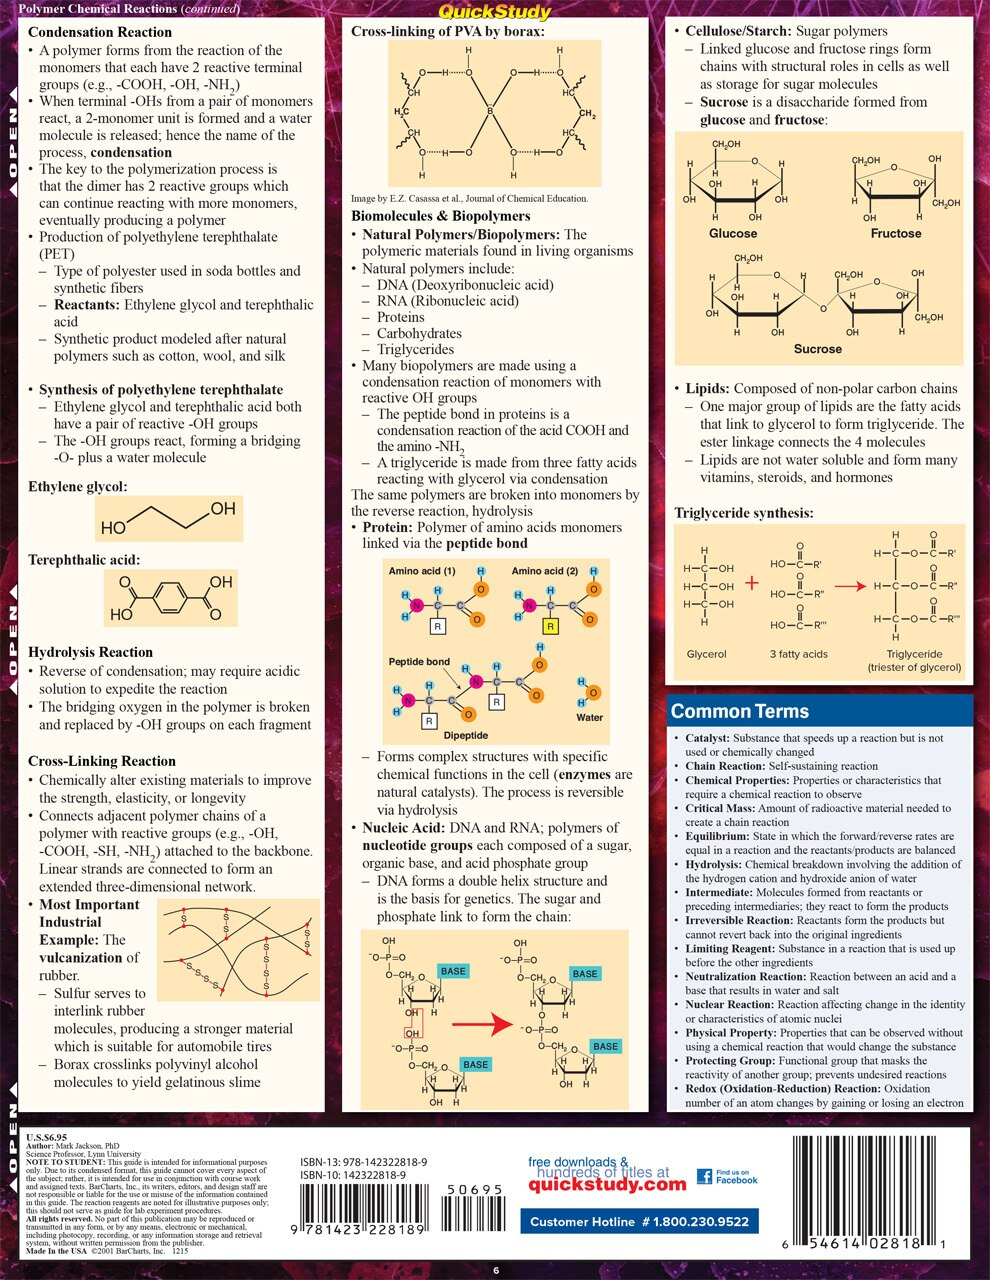 QuickStudy Quick Study Organic Chemistry Reactions Laminated Study Guide BarCharts Publishing Back Image